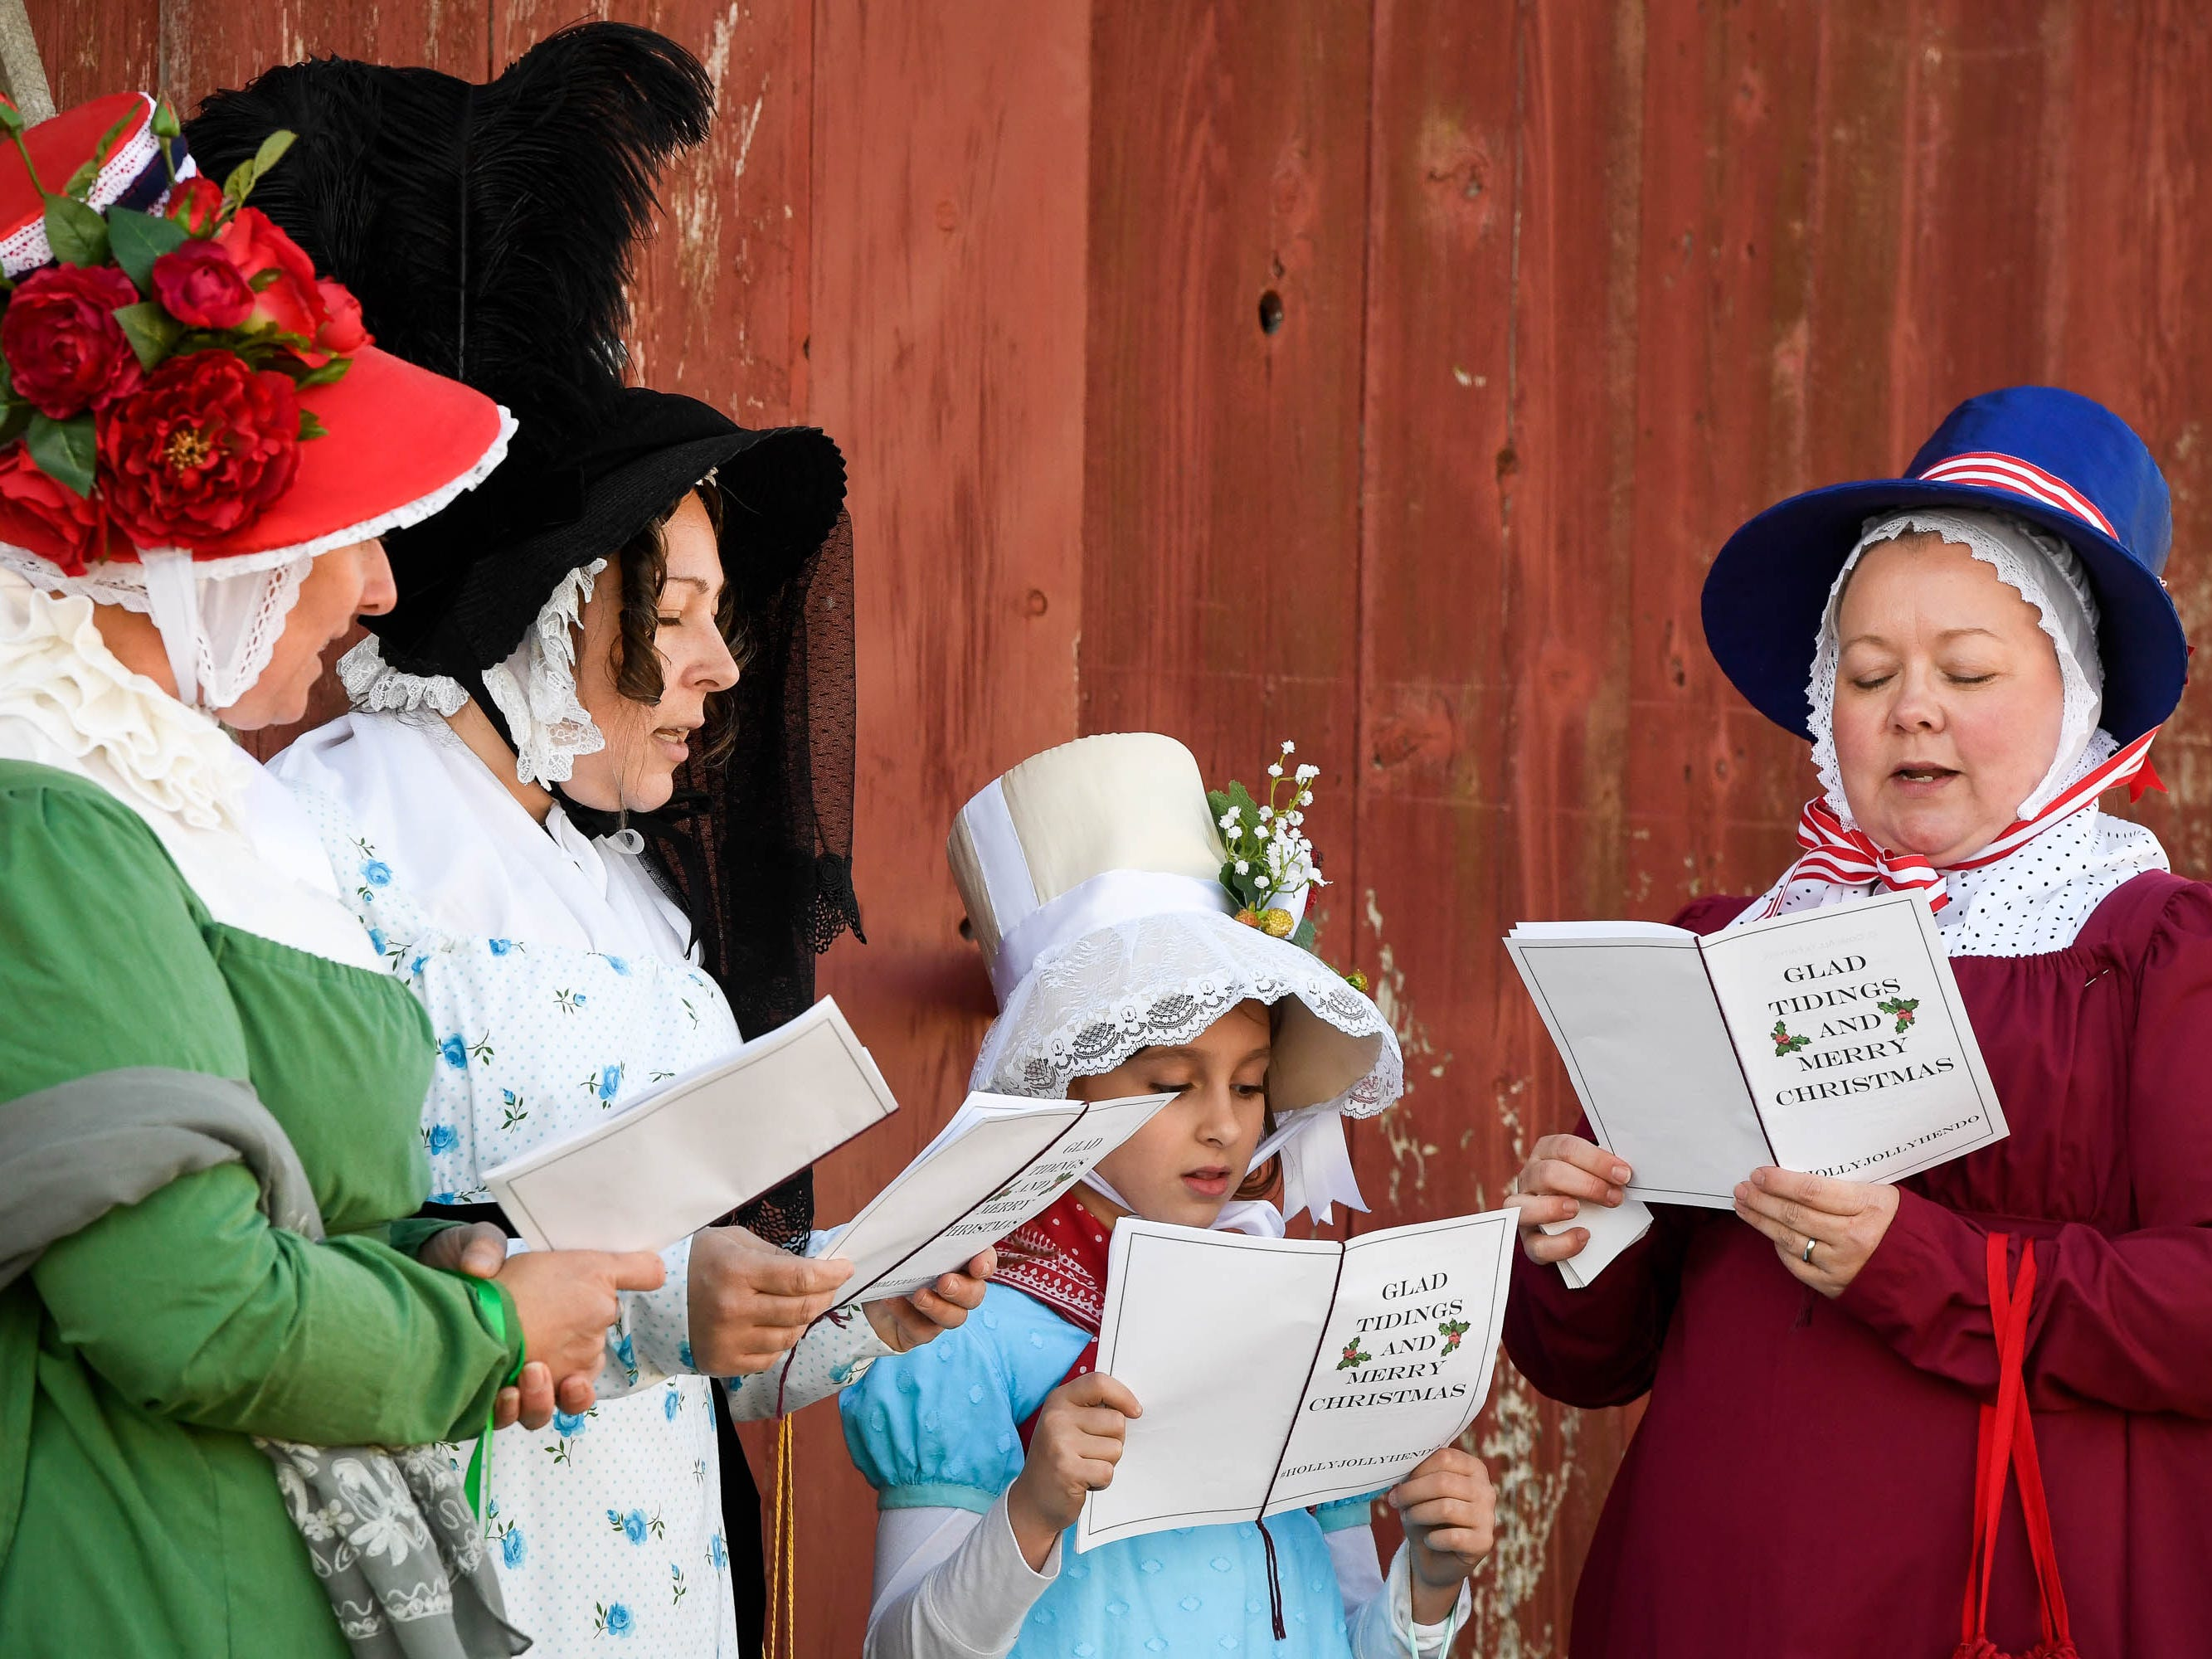 The singing group Holly Jolly Hendo left to right, Heidi McCain, Jennifer Gardner, Eleanor Gardner, nine years-old, and Shannon Hutton sing Christmas Carols at the Christmas on the farm fund raising event for the Healing Reins Therapeutic Riding program Saturday. The family friendly event features pony rides, hay rides, vendor mall and barbecue, November 24, 2018.